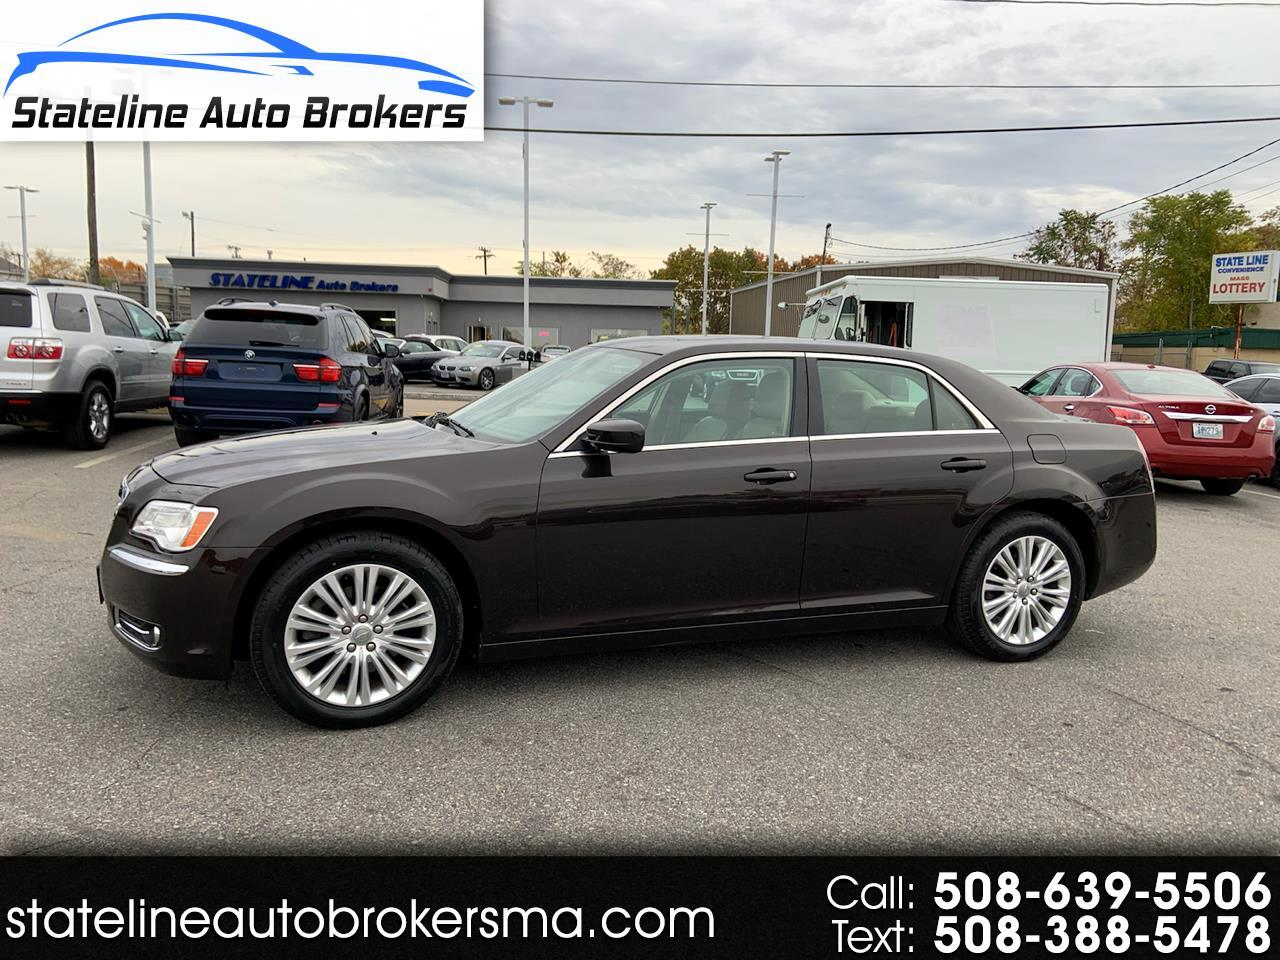 2013 Chrysler 300 For Sale >> Used 2013 Chrysler 300 4dr Sdn Awd For Sale In Attleboro Ma